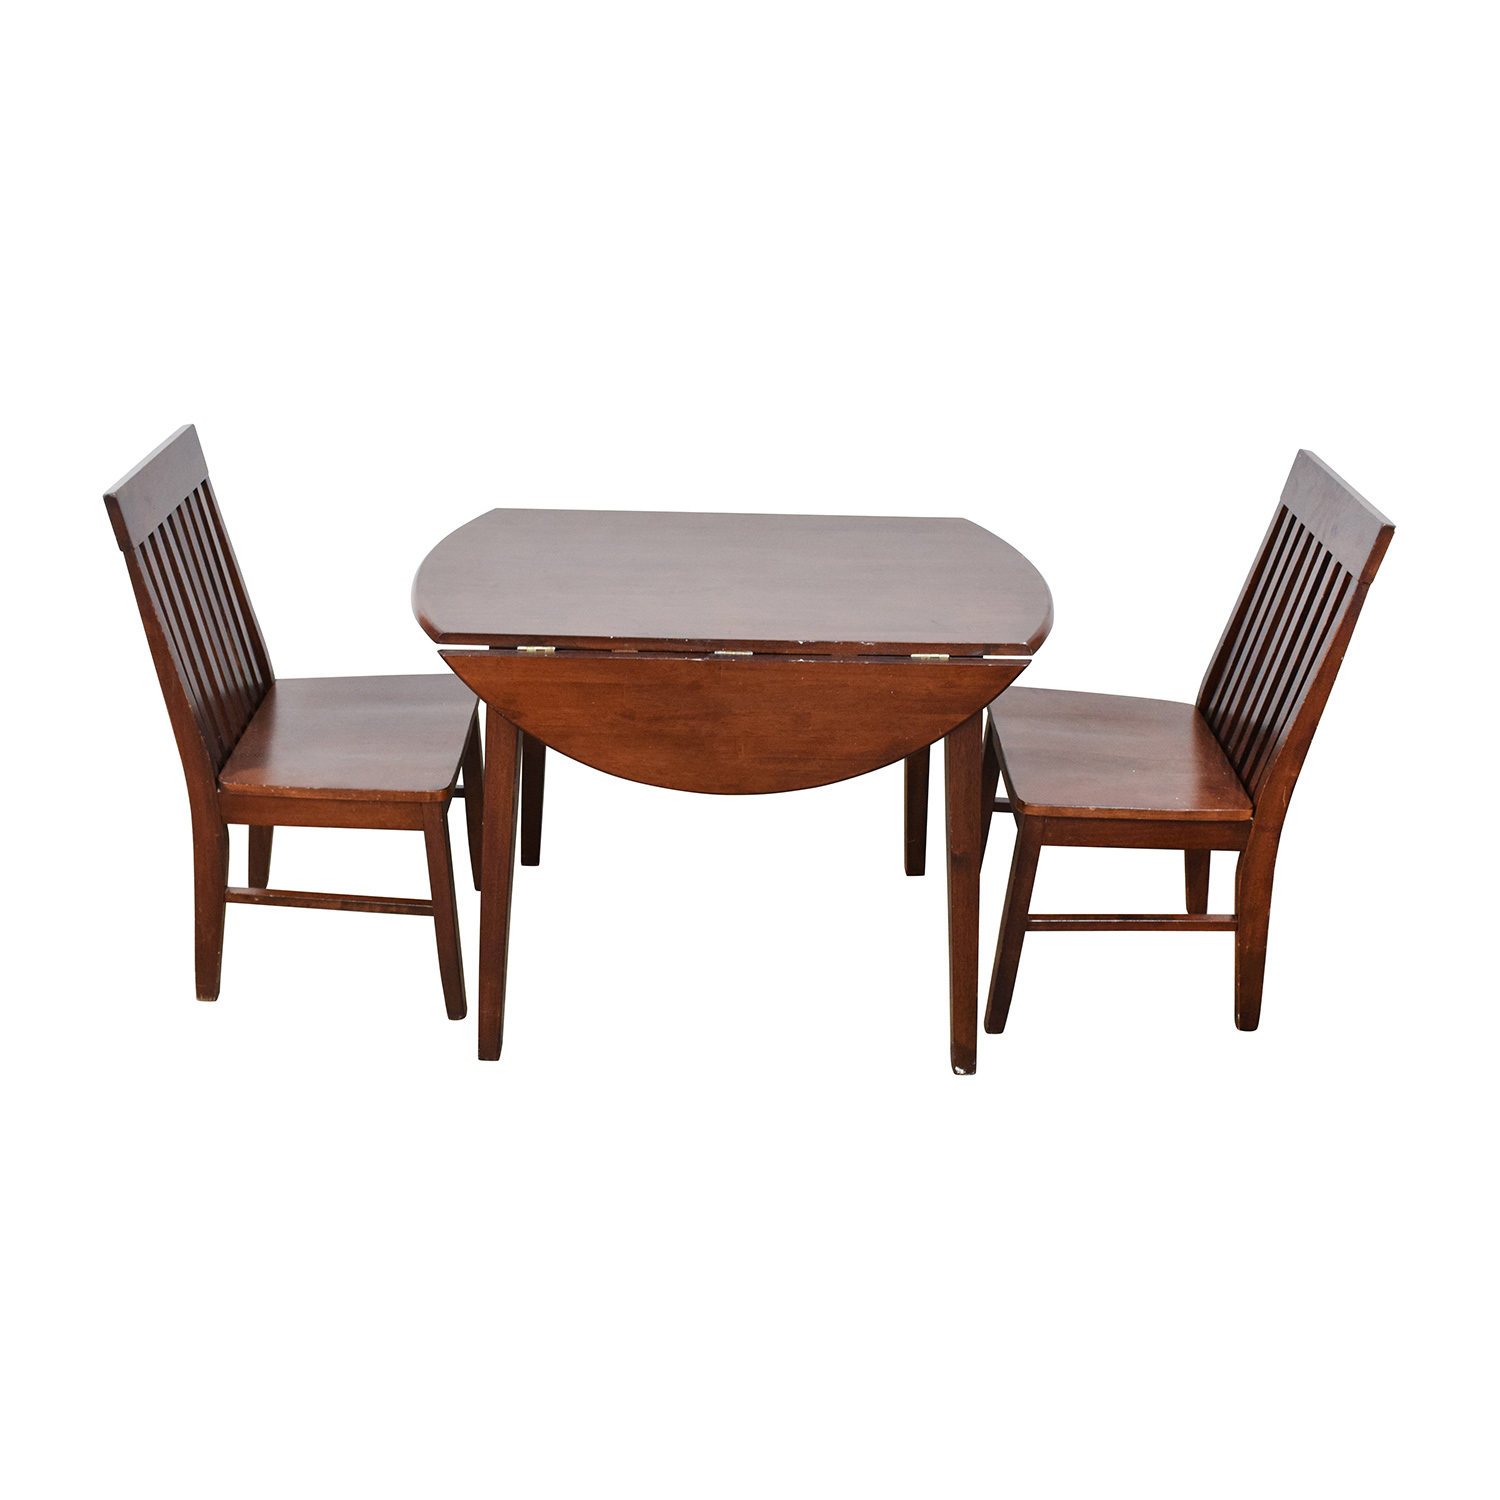 Round Dining Table with Folding Sides and Chairs second hand